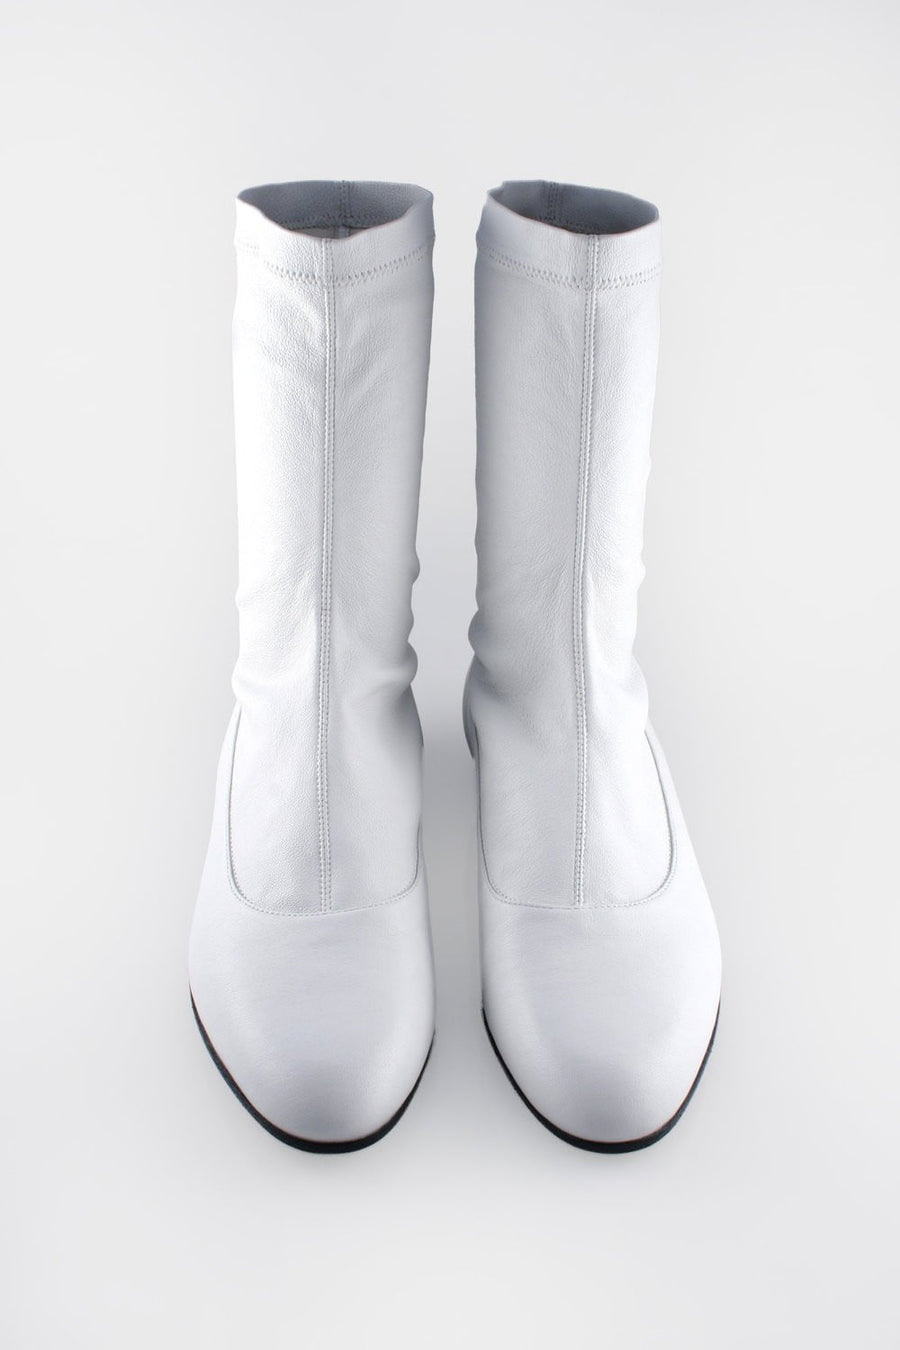 Stretch Stocking Boot White.